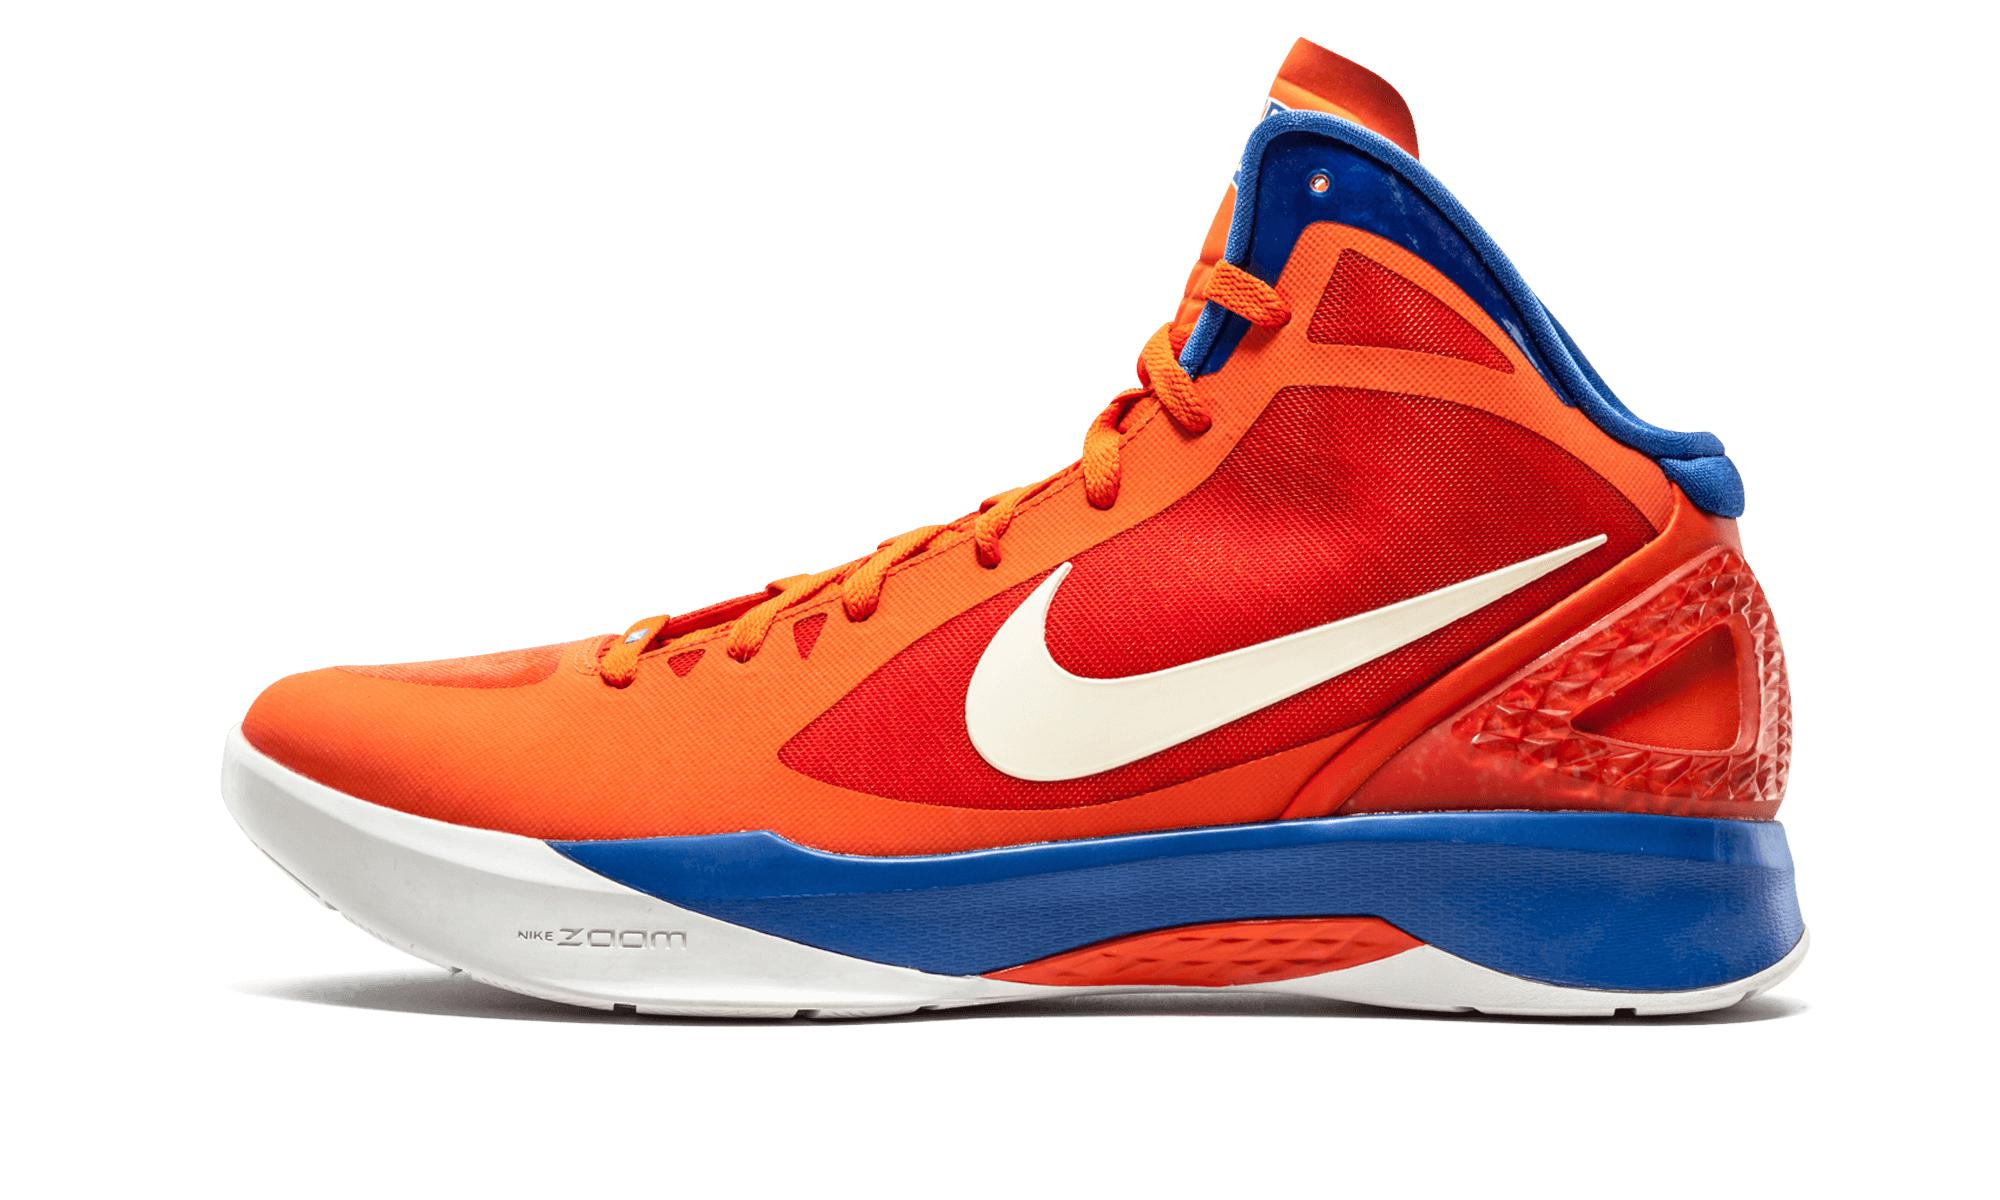 big sale f485b fb8a4 Lyst - Nike Zoom Hyperdunk 2011 in Blue for Men